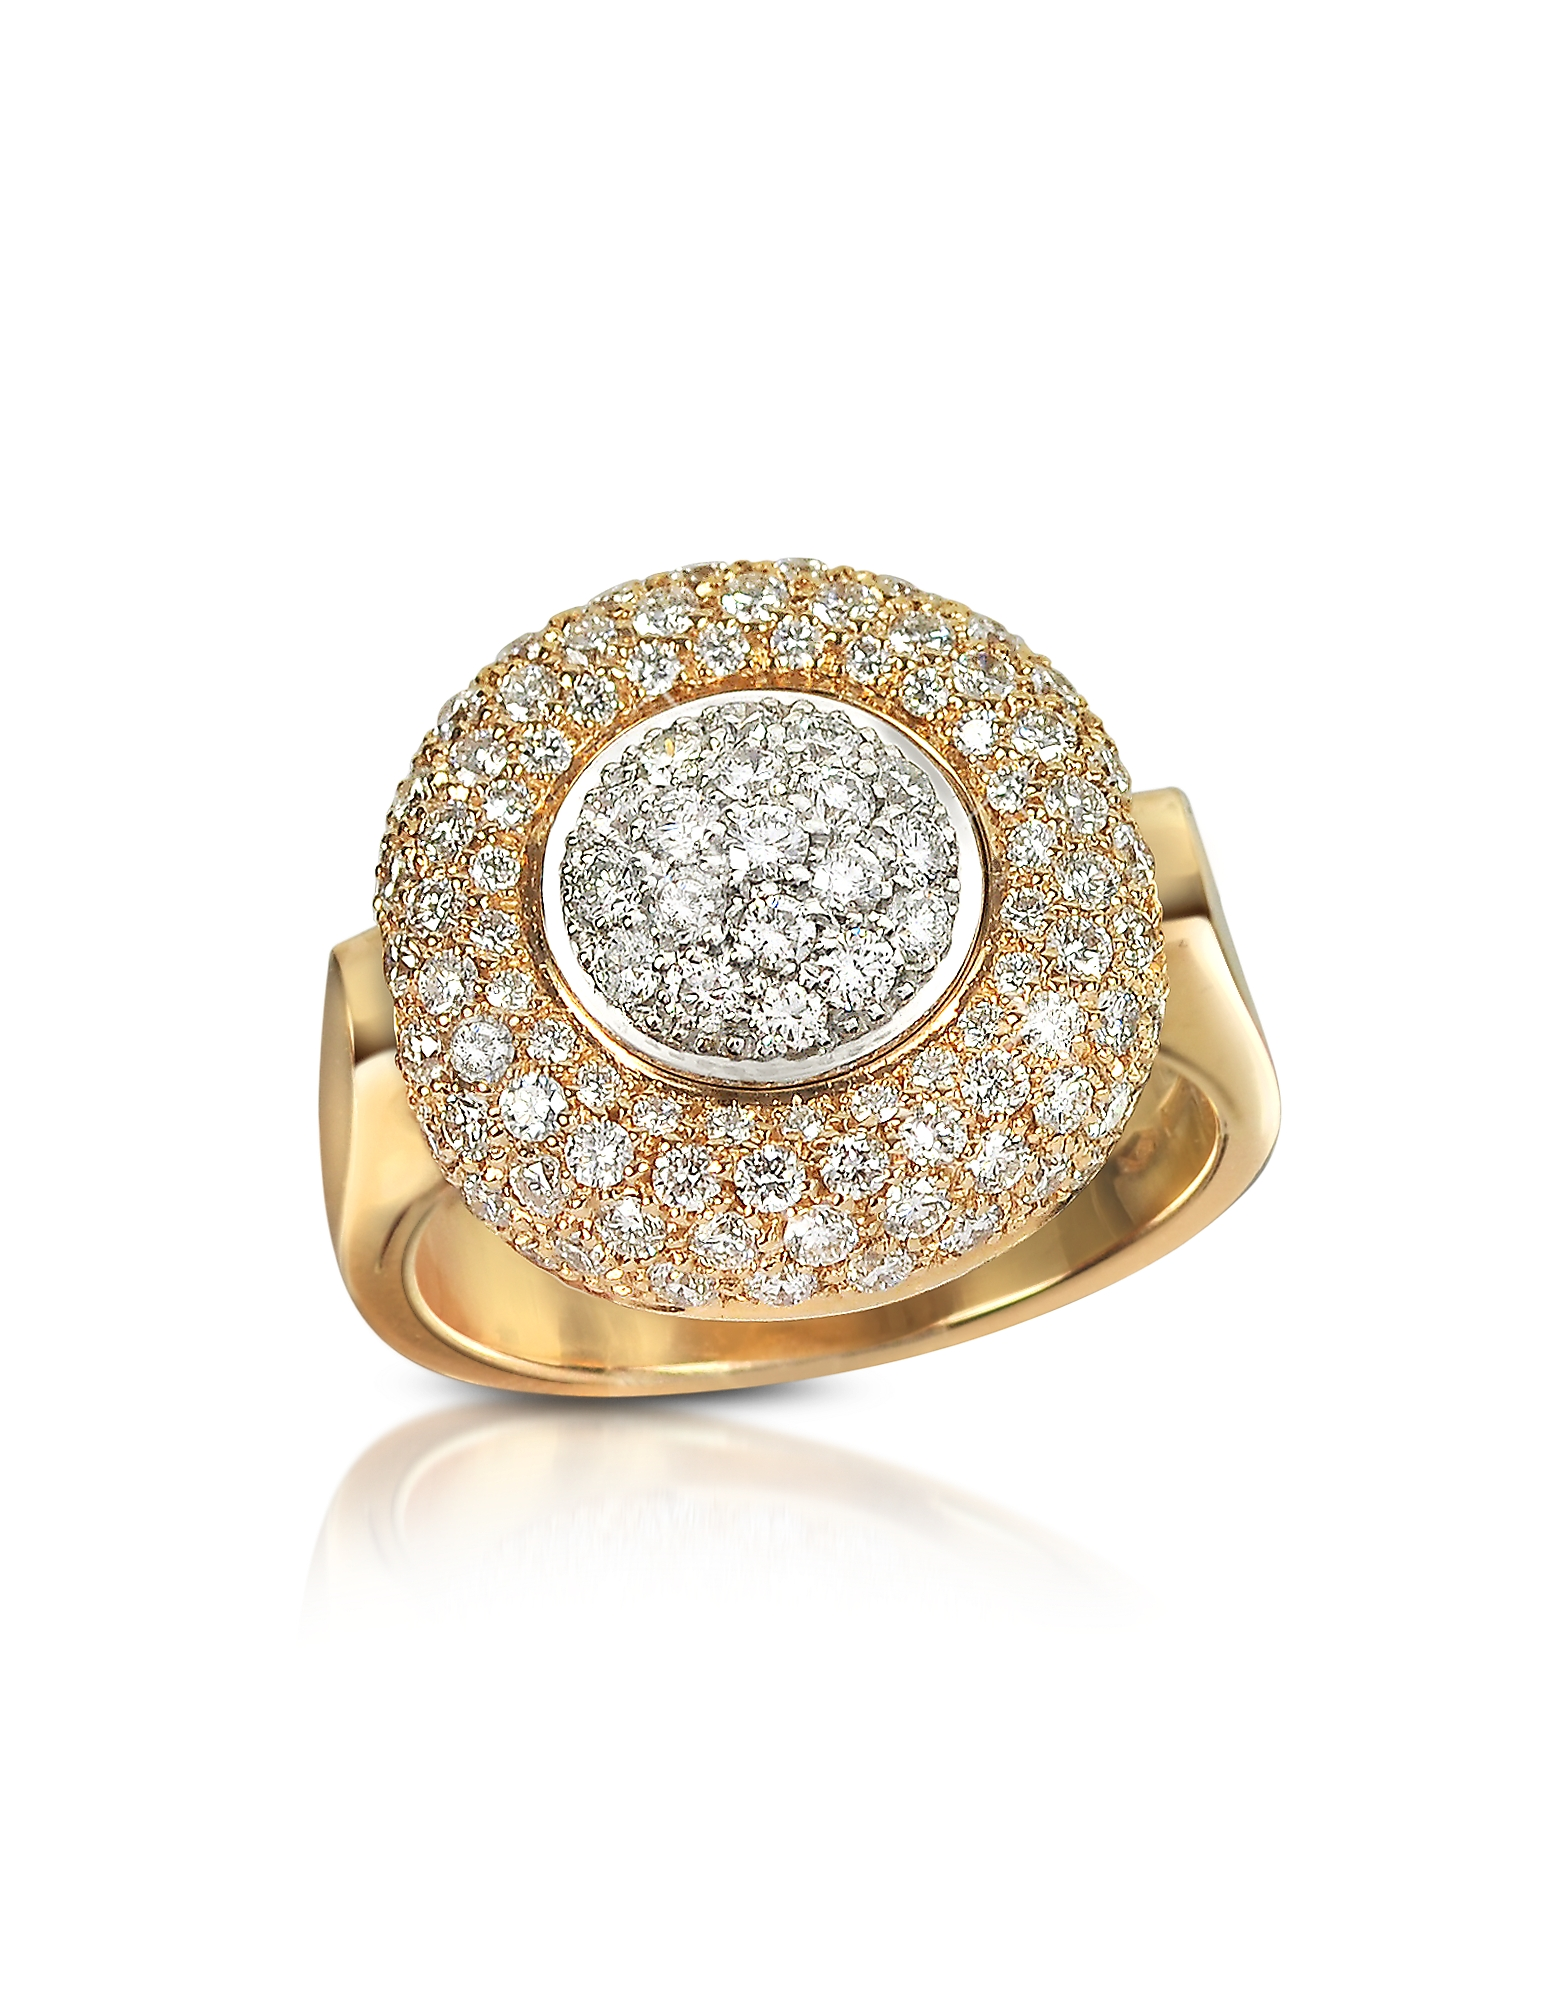 Forzieri Designer Rings, 1.49 ct Diamond Pave 18K Gold Ring